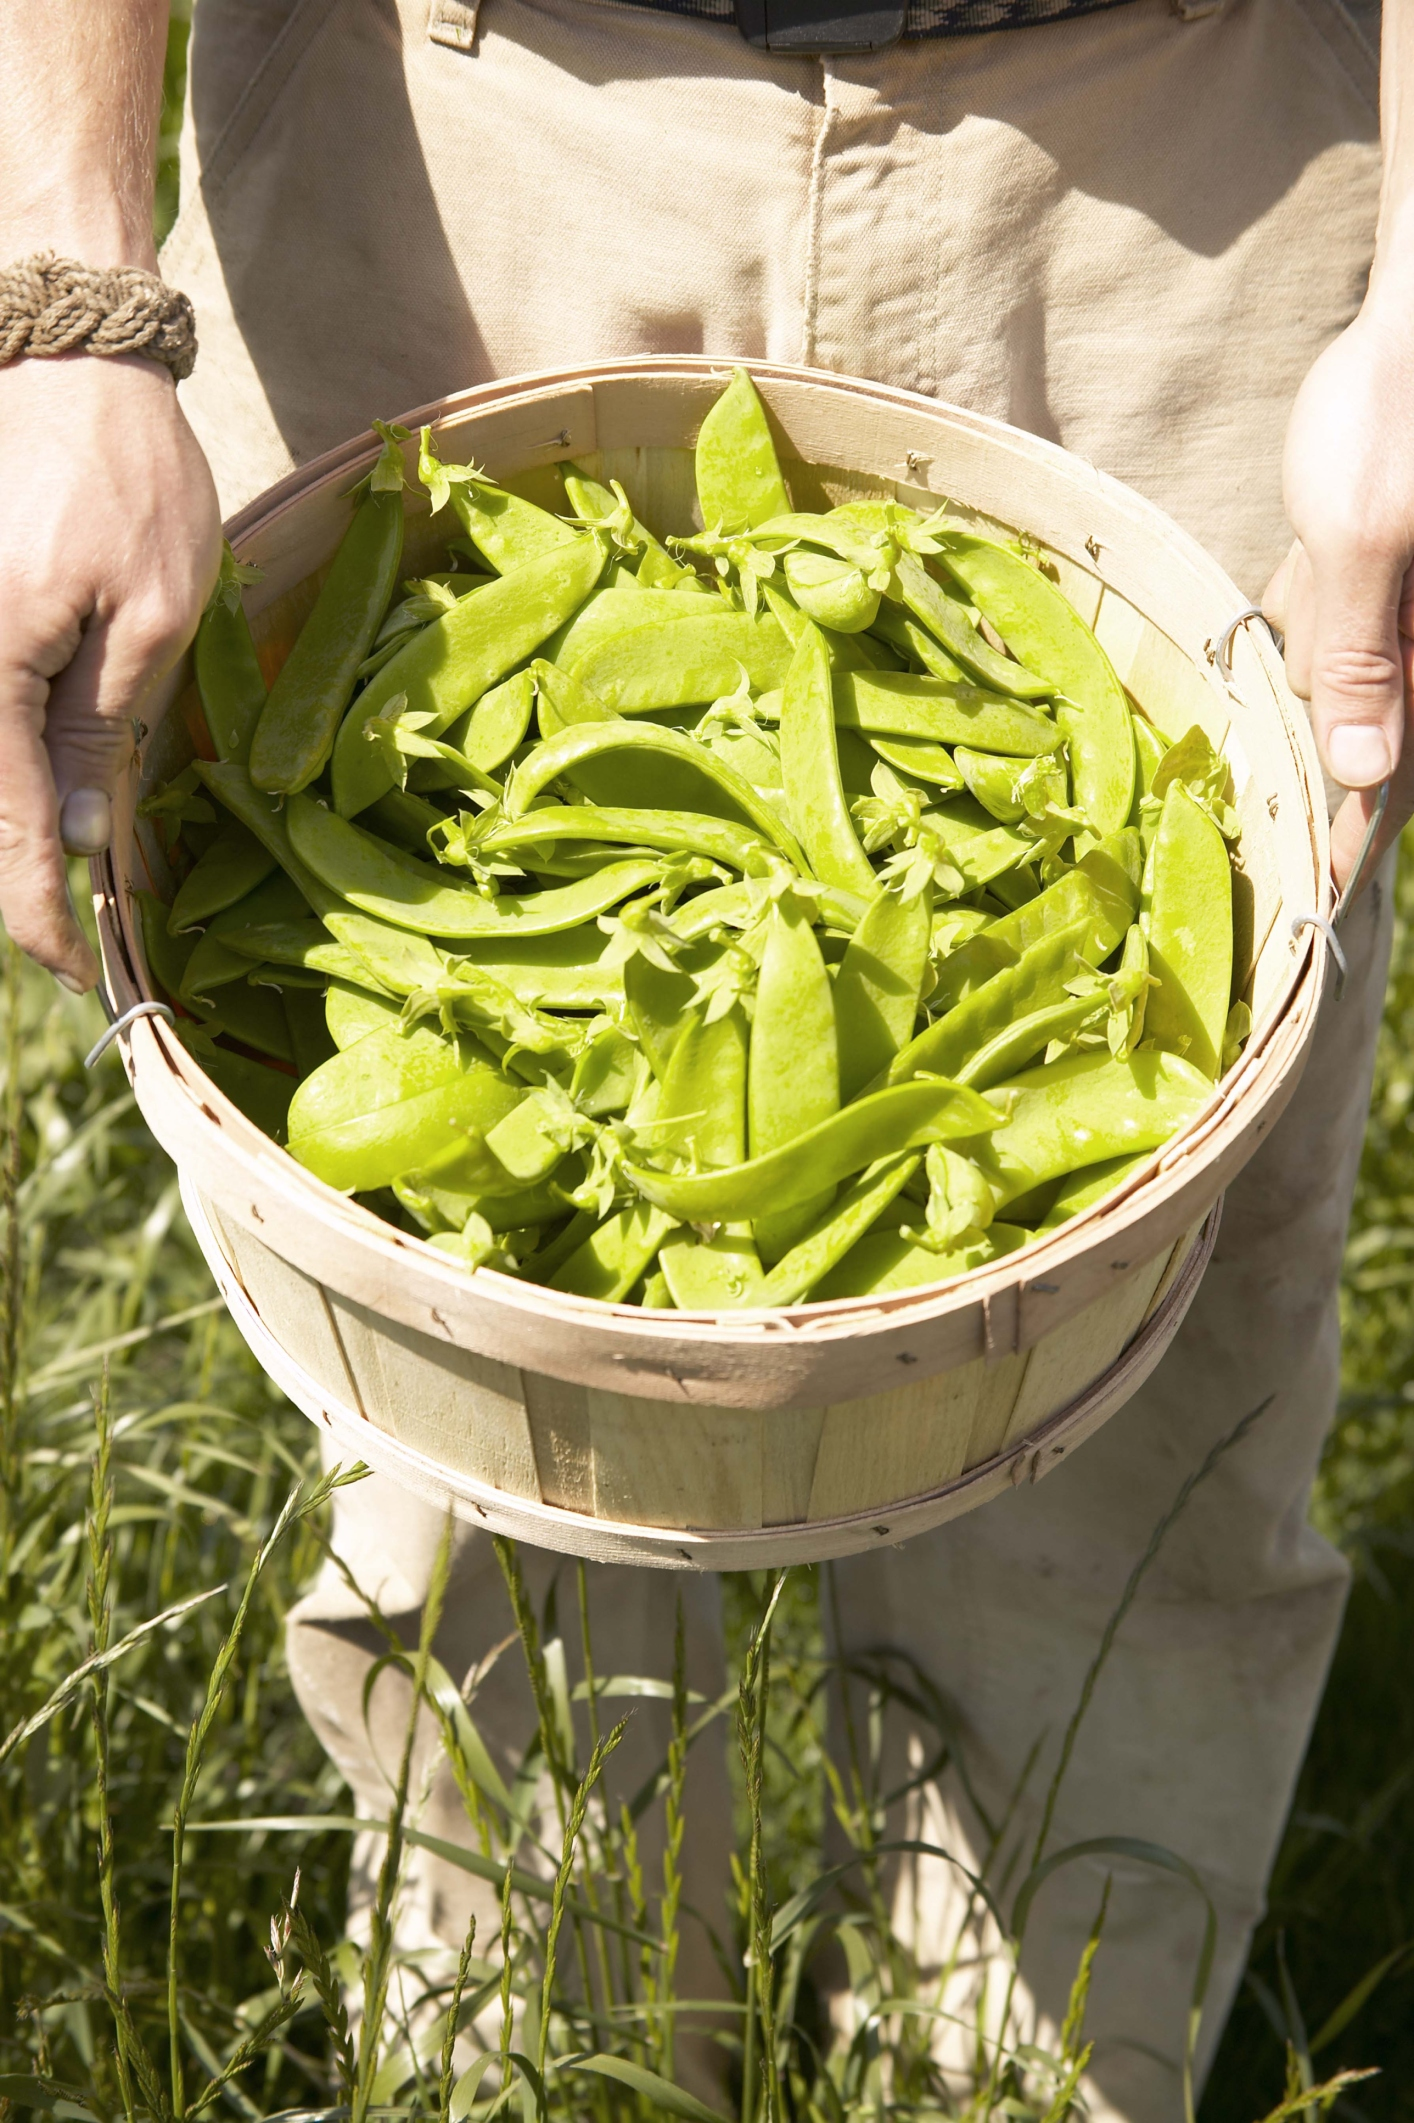 Snap peas are a healthy high-protein snack or meal addition.